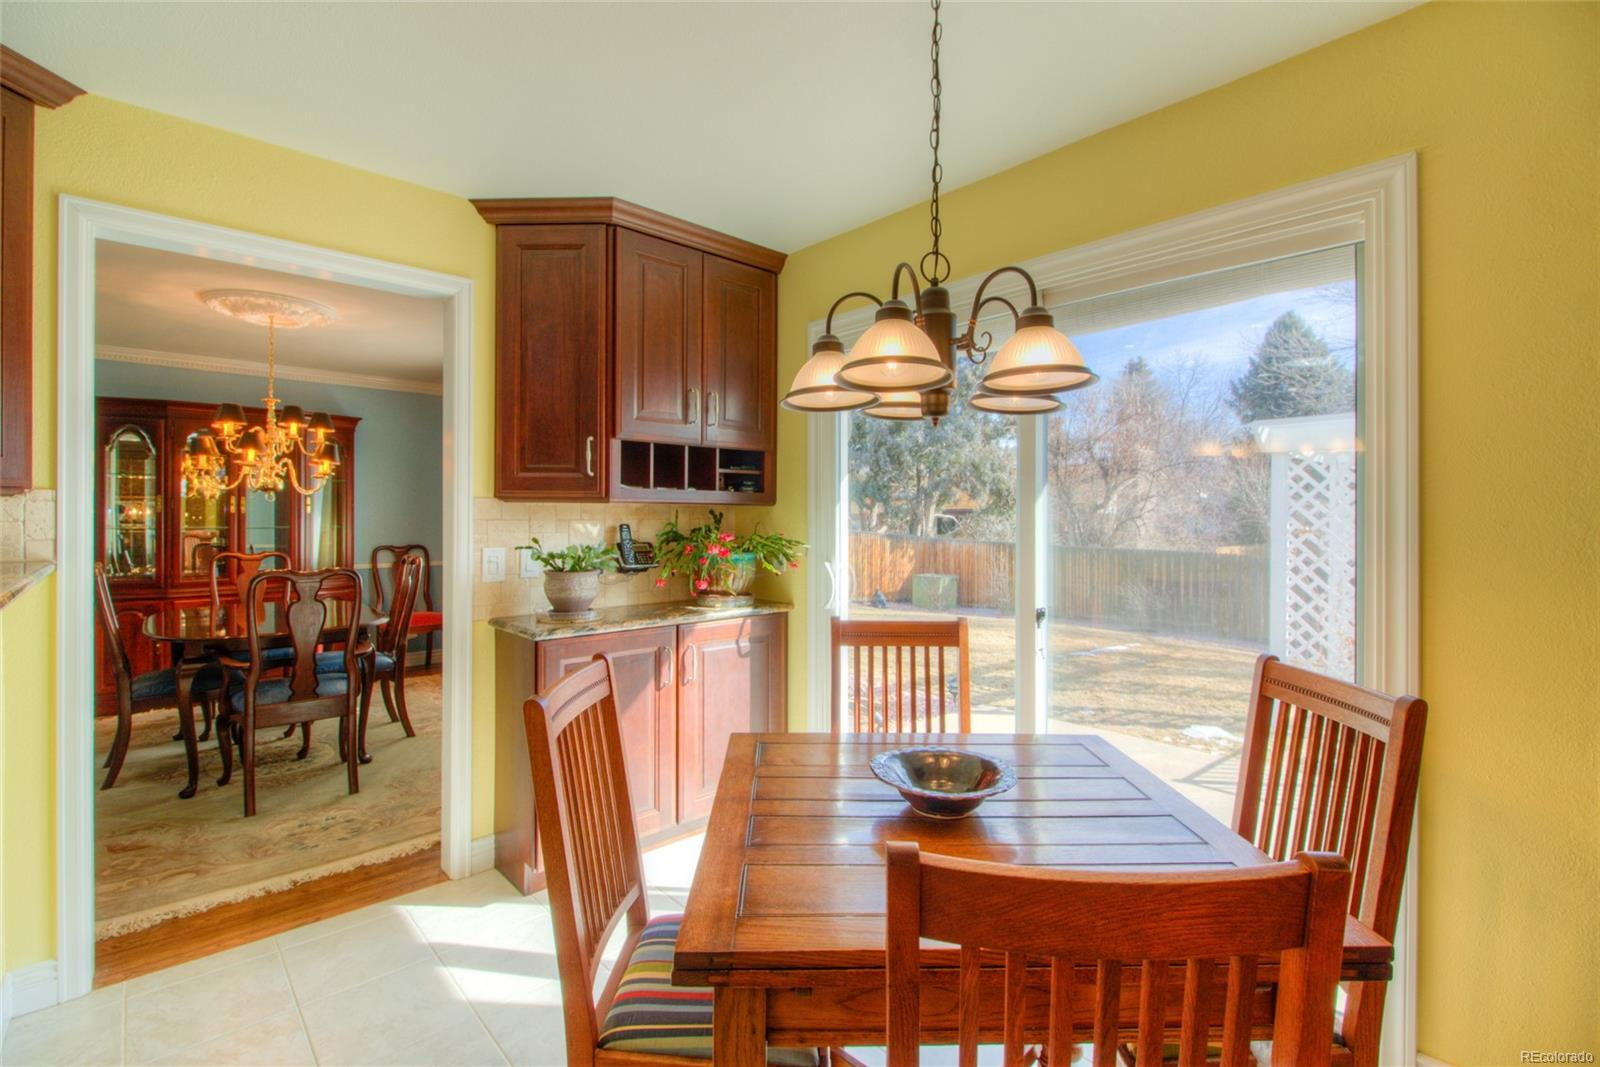 Kitchen Nook with additional built-in cabinets